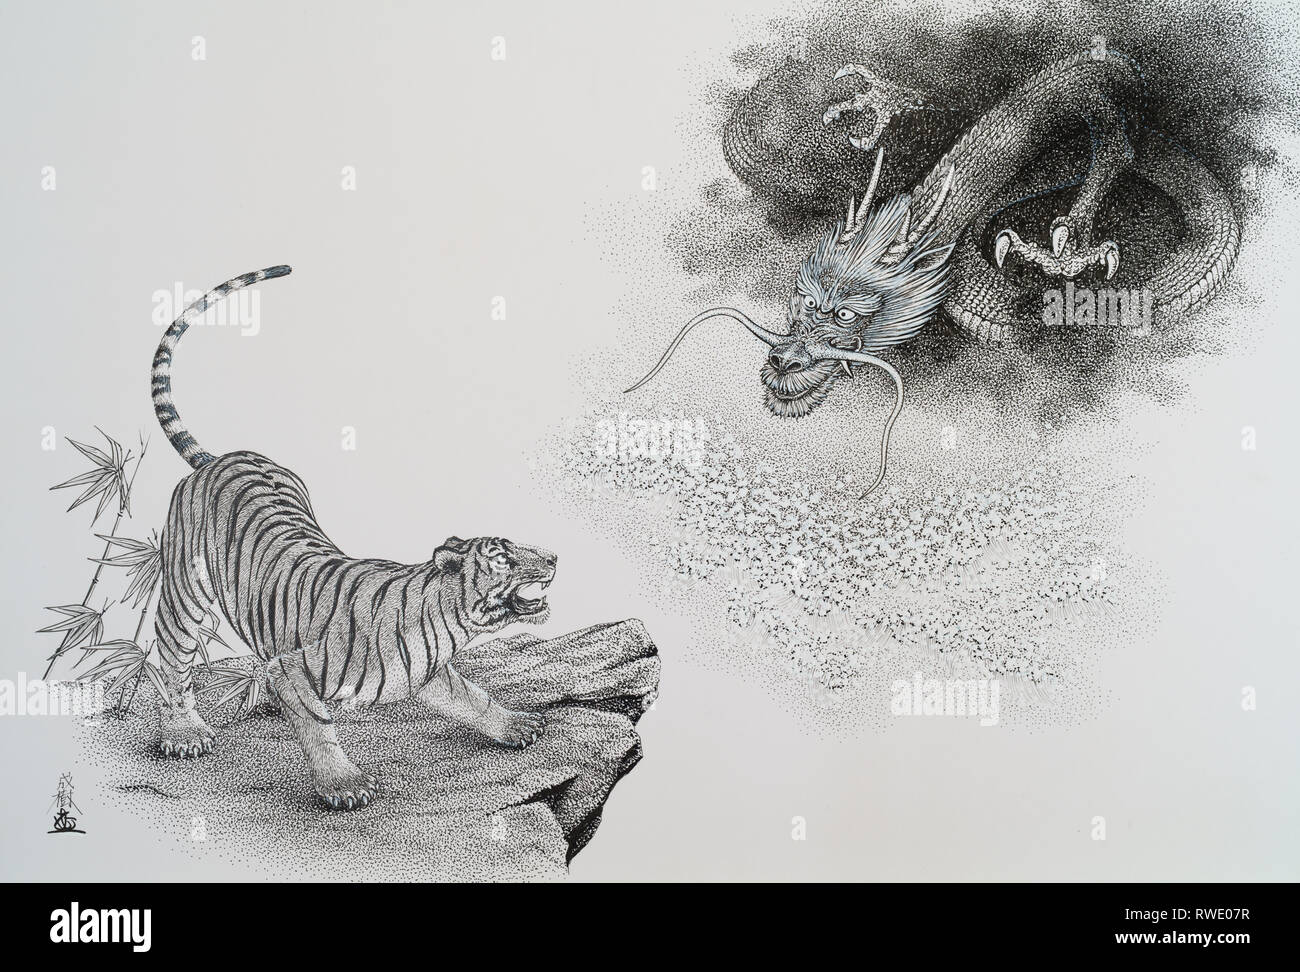 hight resolution of tiger and dragon illustration stock image